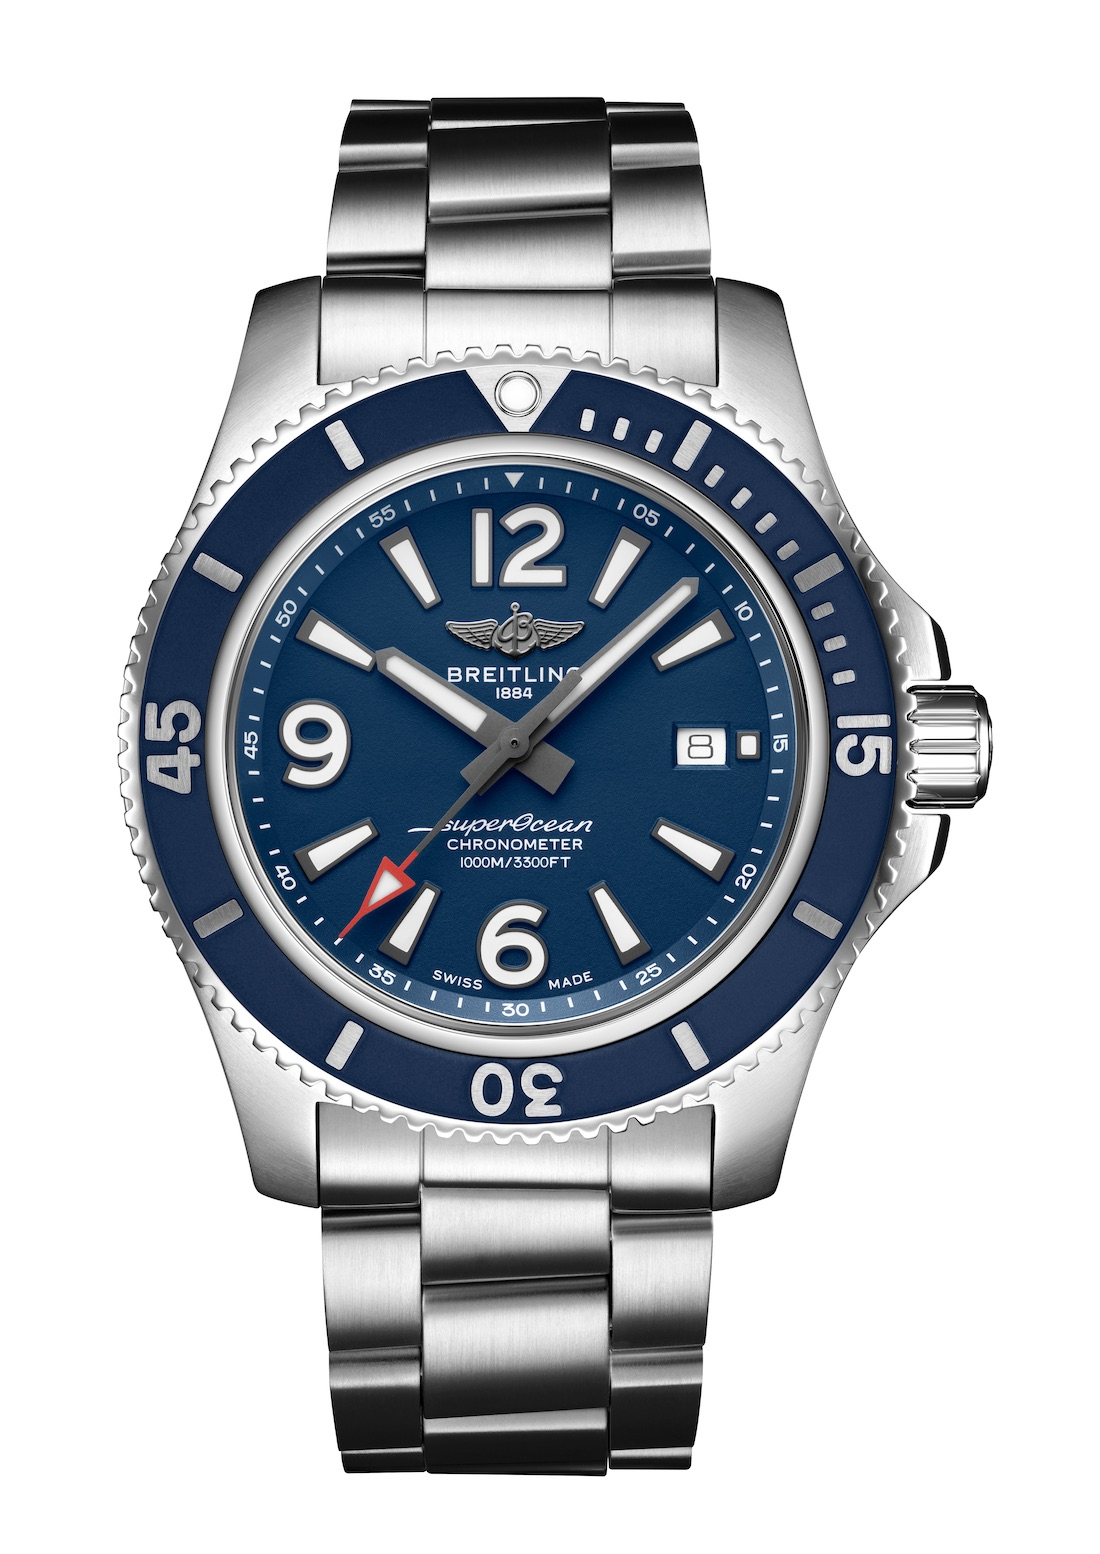 10_Superocean 44 with blue dial and stainless-steel bracelet_22863_19-03-19.jpeg